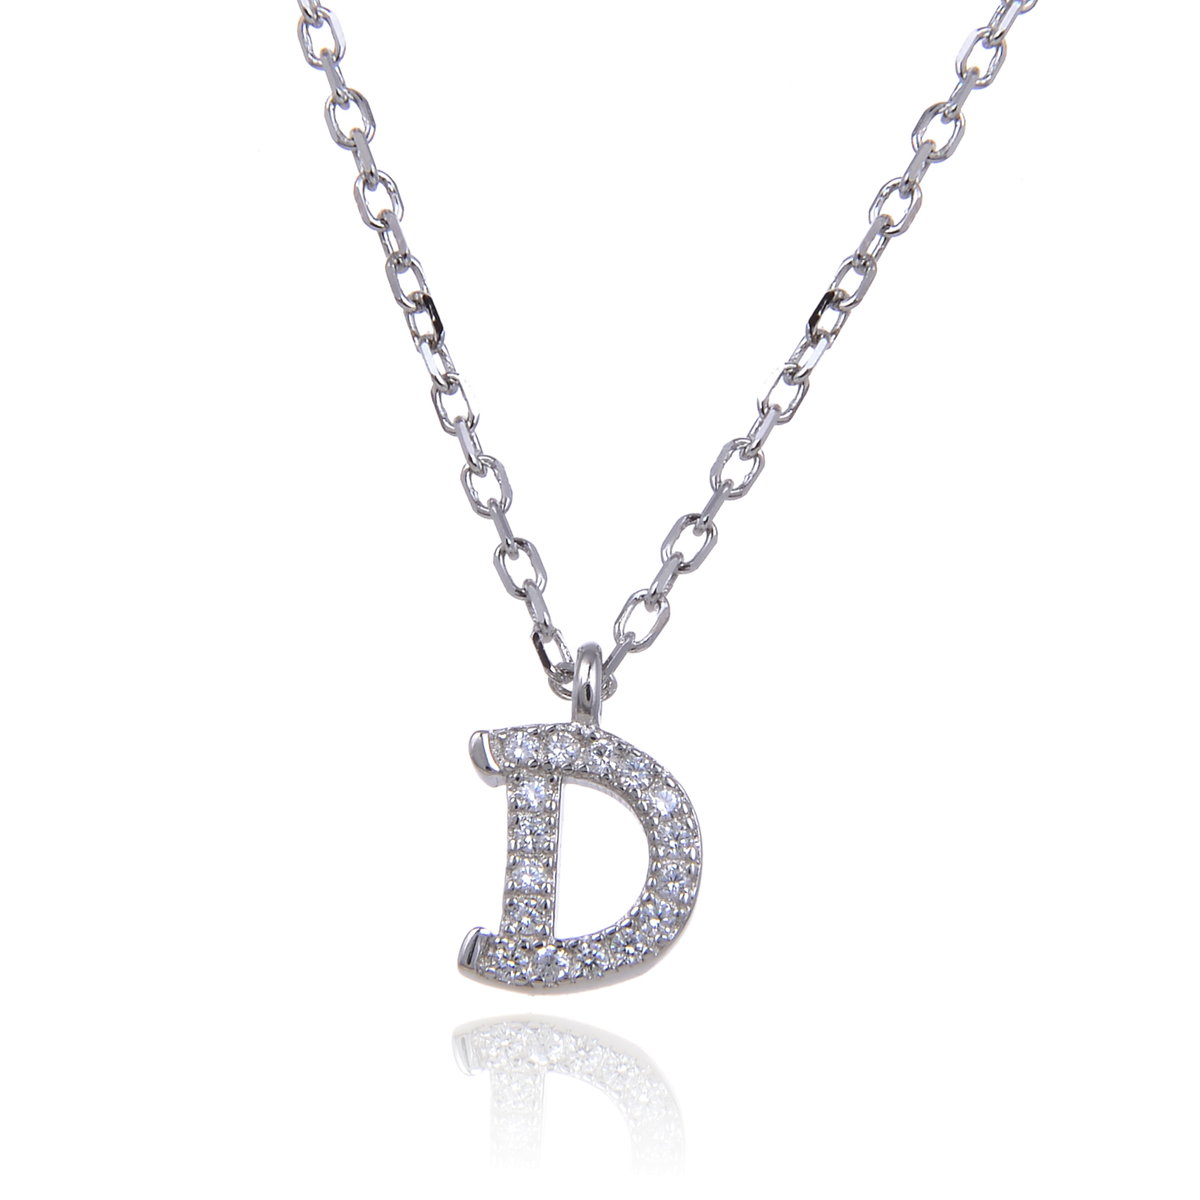 Letter D Necklace - penelope-it.com